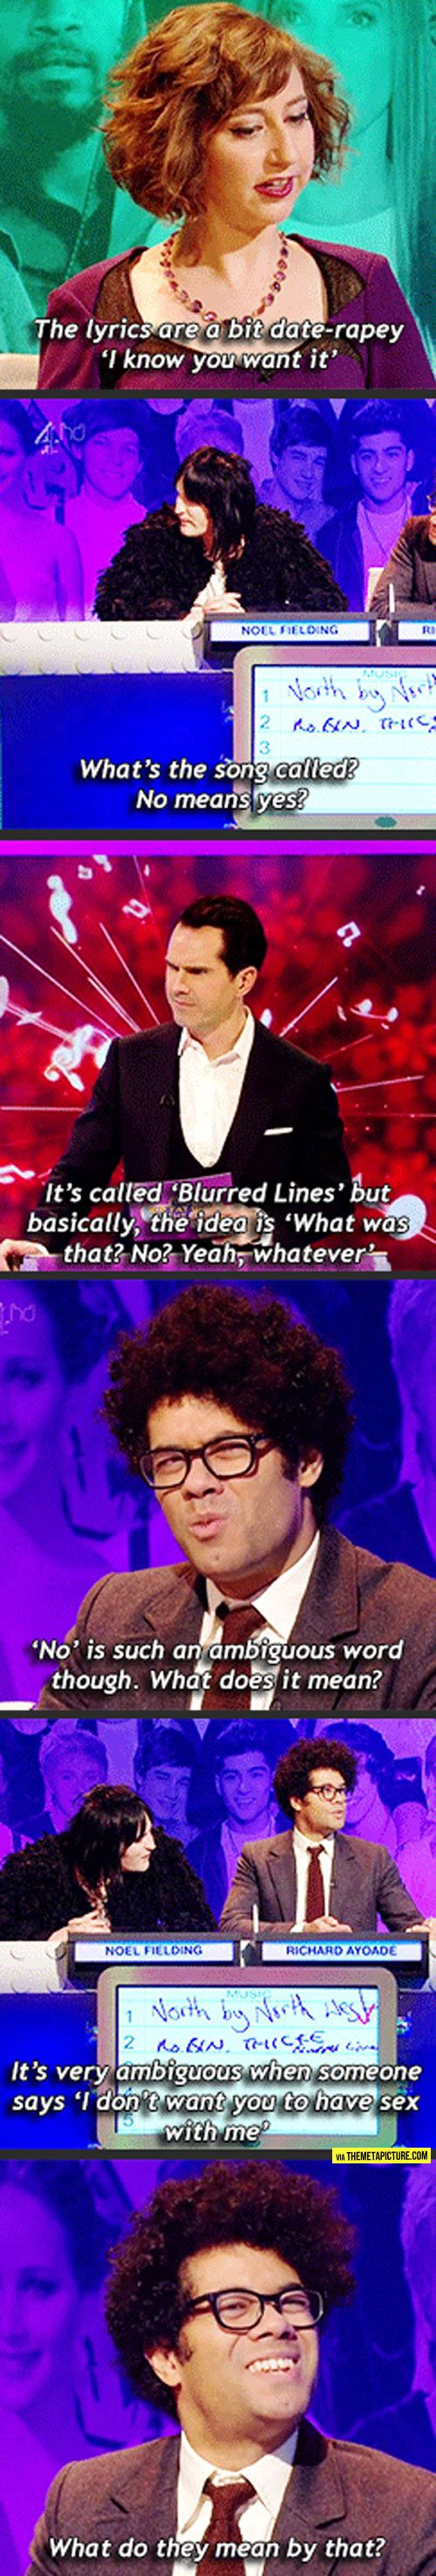 funny-Blurred-Lines-meaning-Richard-Ayoade